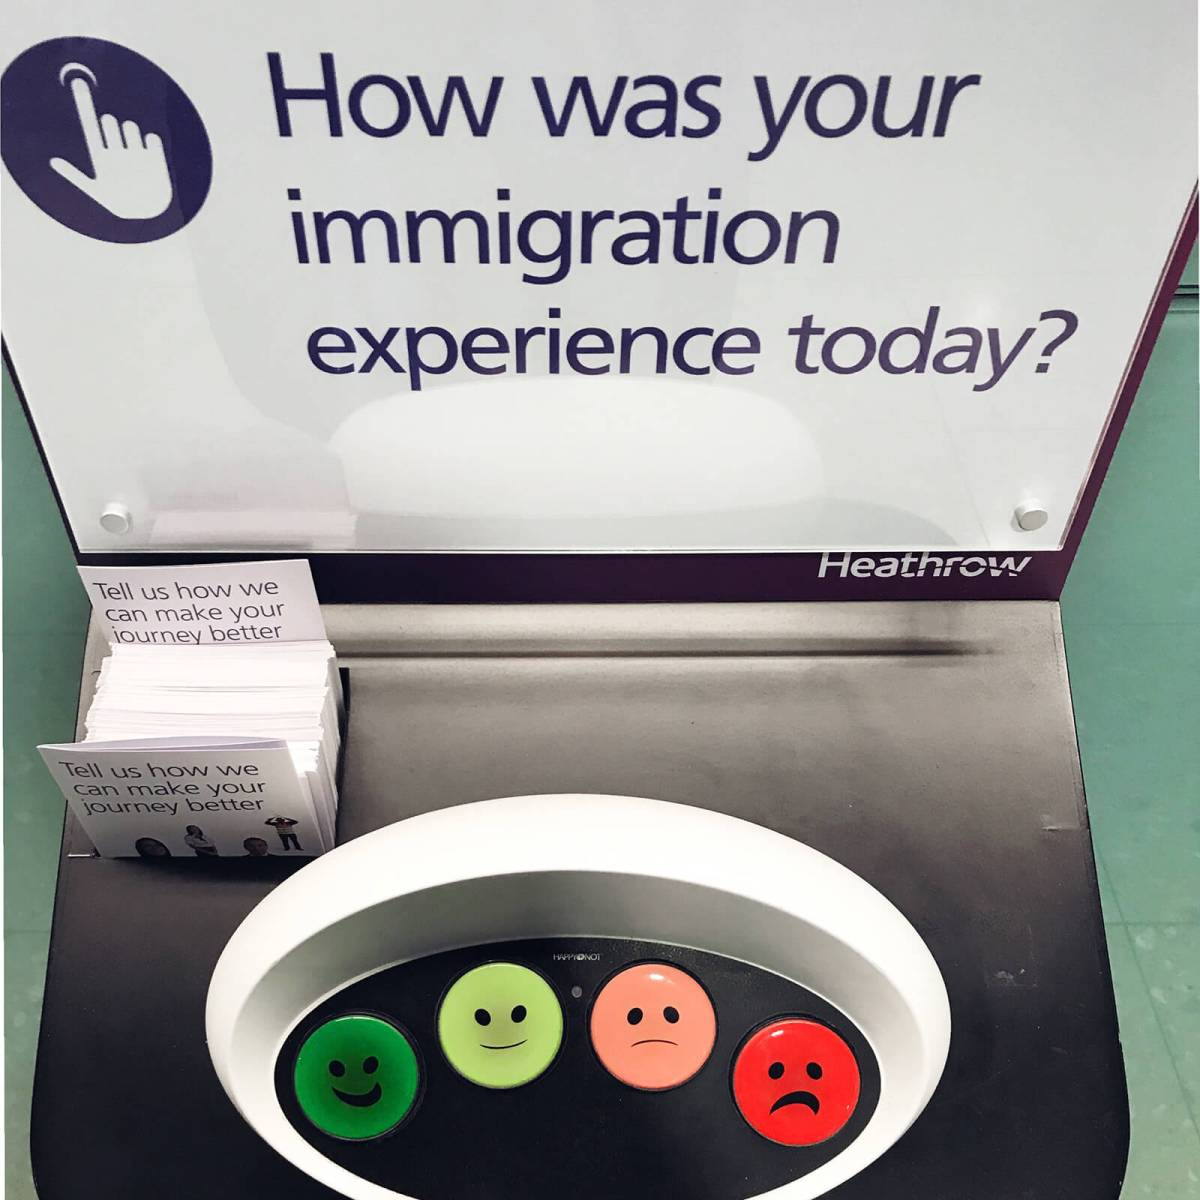 London Heathrow Airport immigration survey